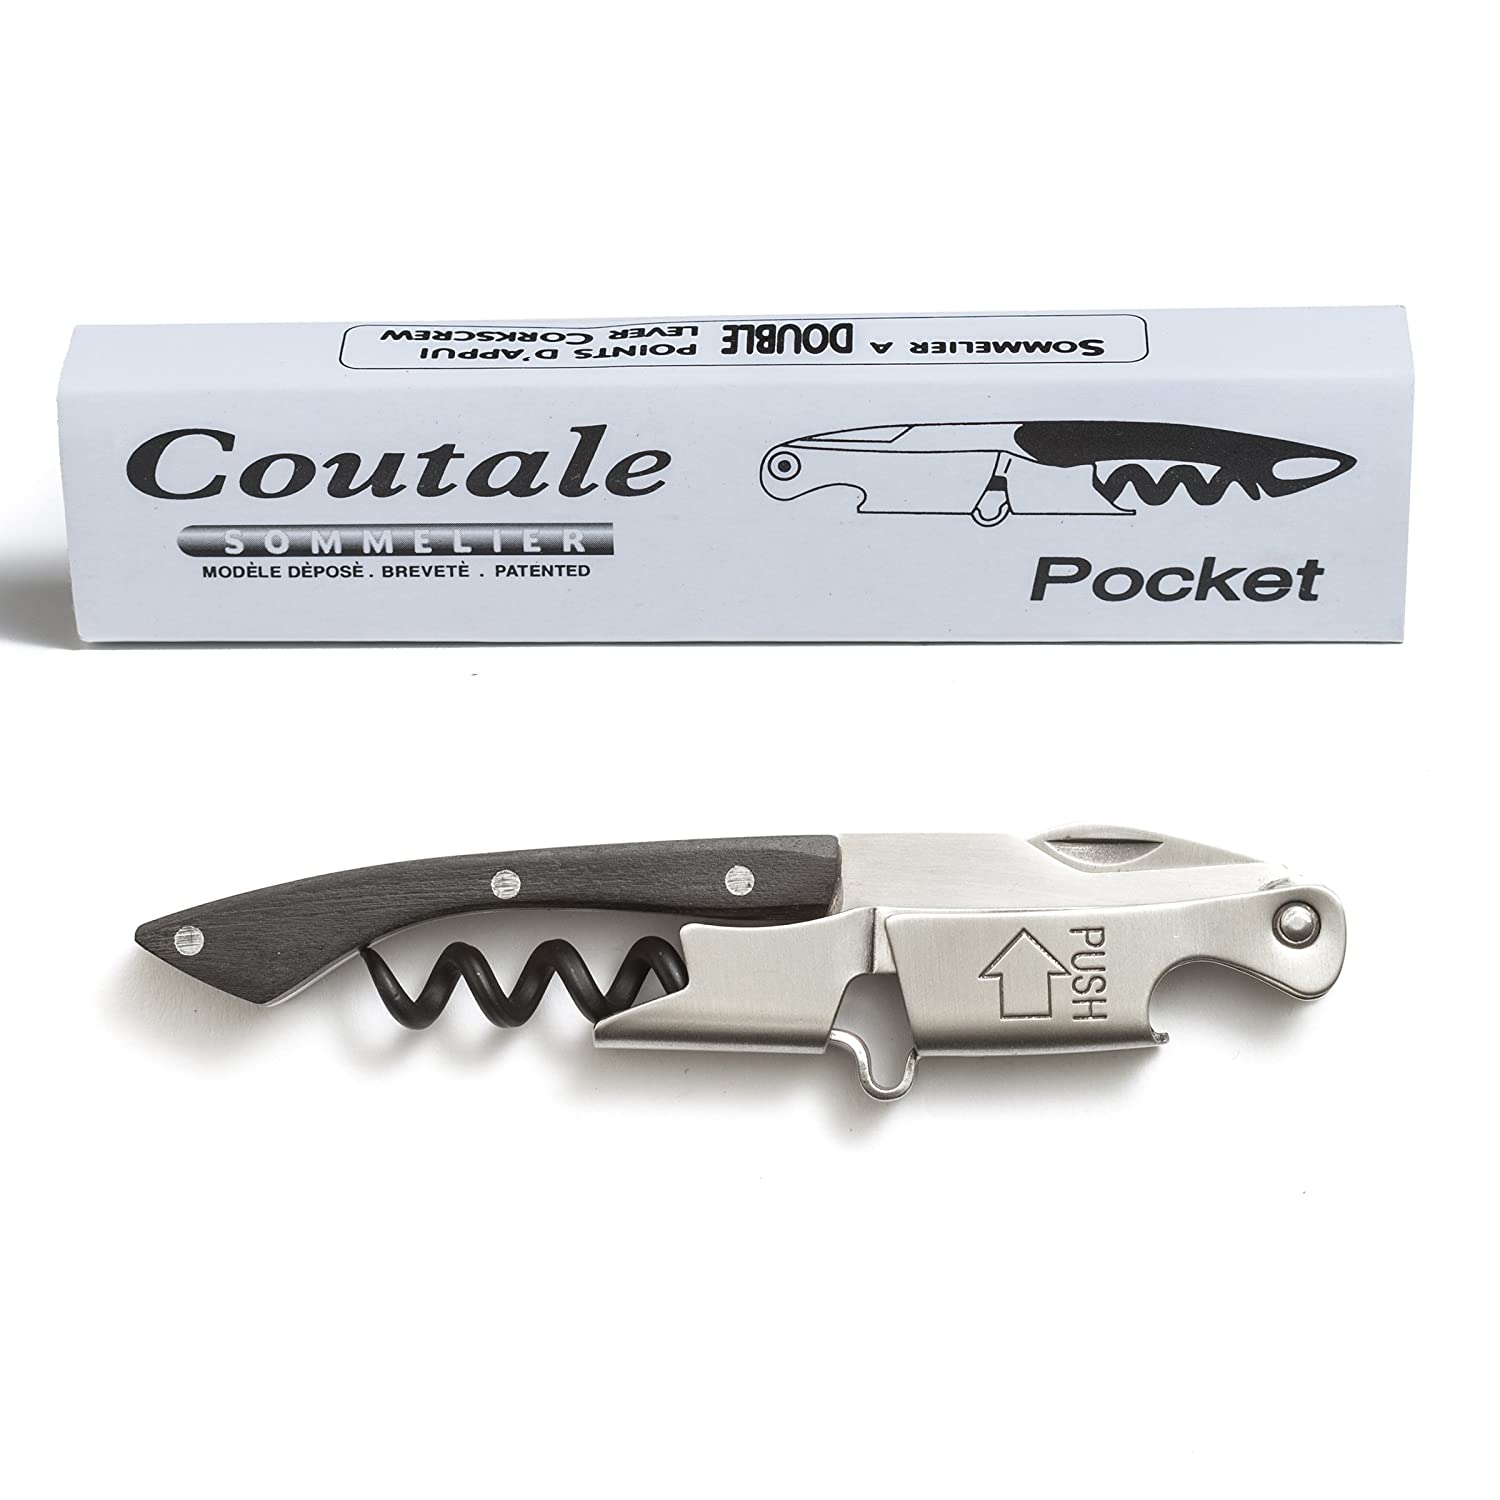 Plastic handle Stainless Steel Fixtures Premium by Coutale Sommelier